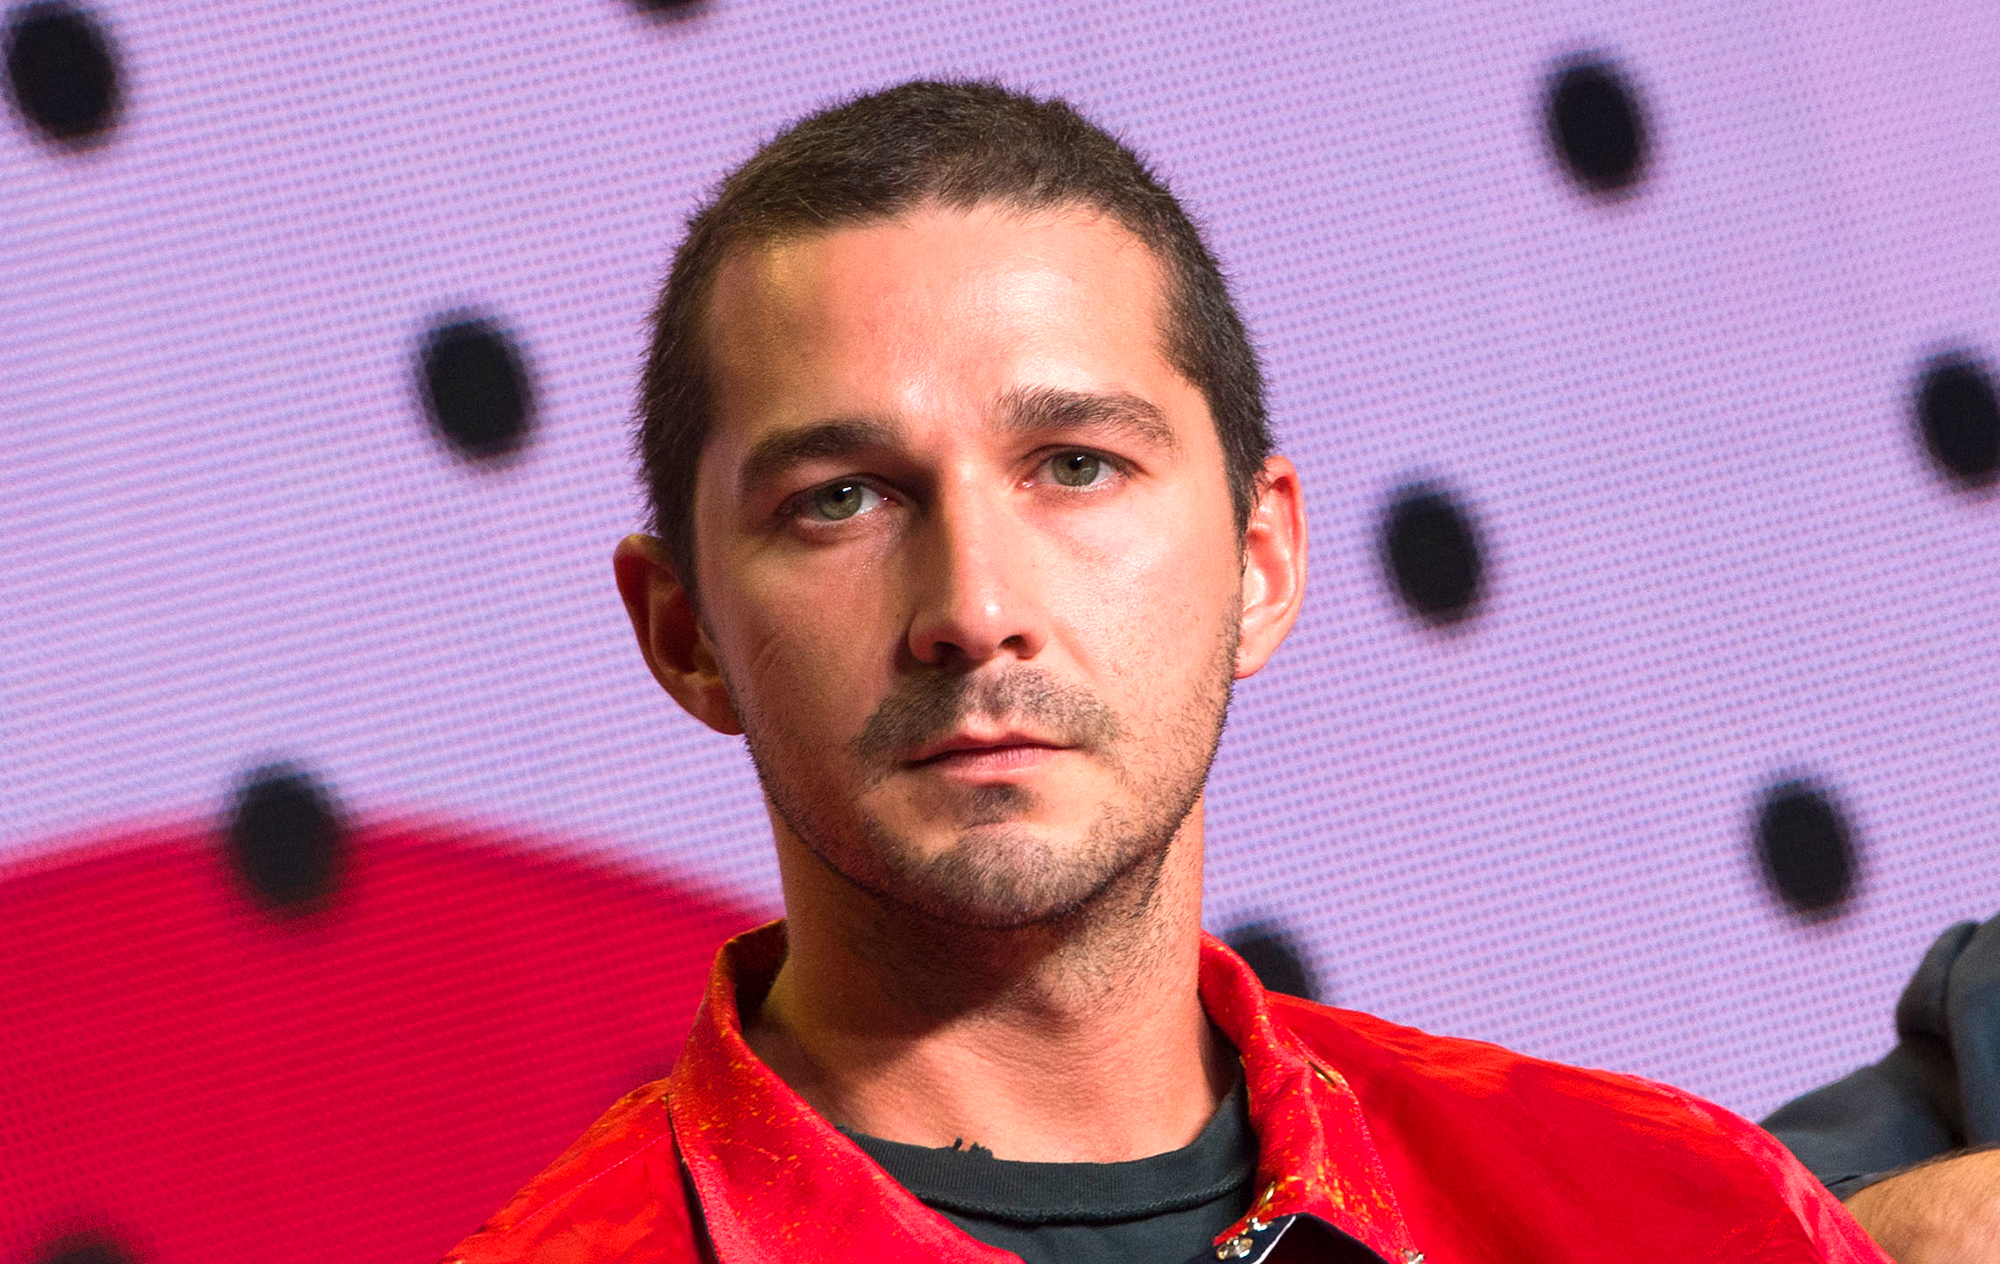 Shia Labeouf Says Kanye West 'Took All My Fucking Clothes'